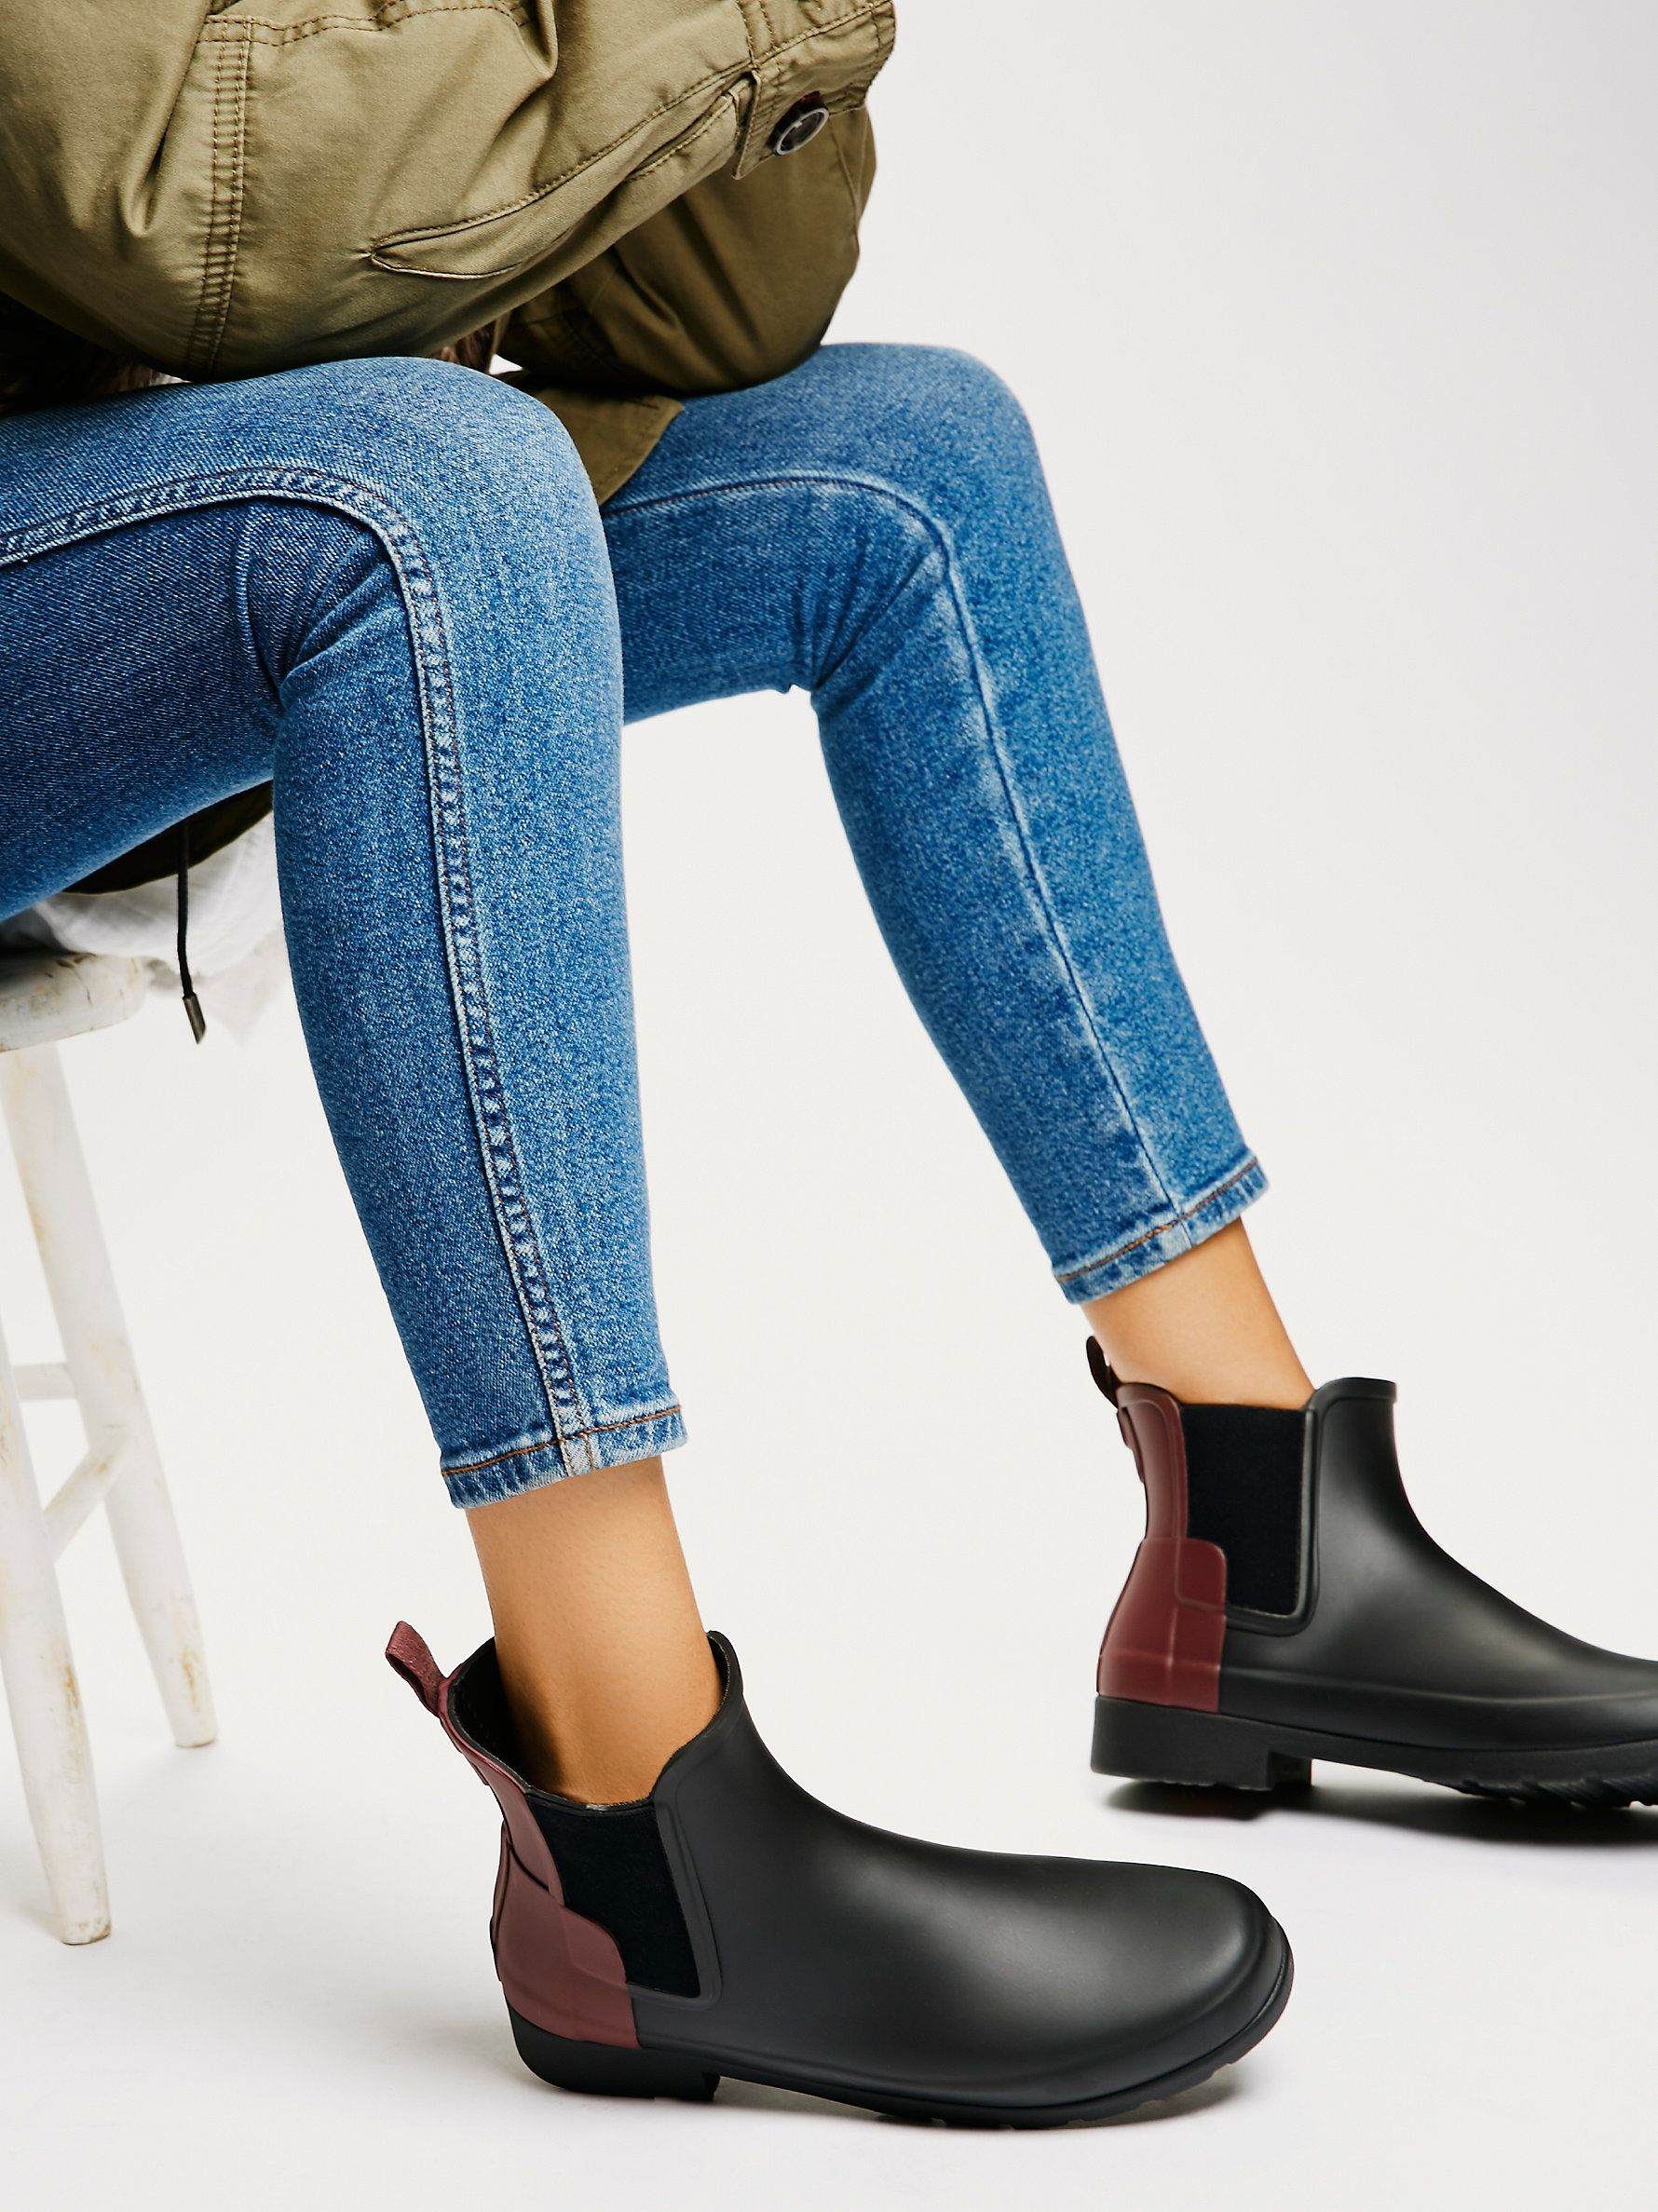 a9235a25695a Hunter Chelsea Rain Boots | Bad weather can't stop you when you're wearing  these super sleek slip-on rain boots. Pull-tab in back and side goring for  an ...